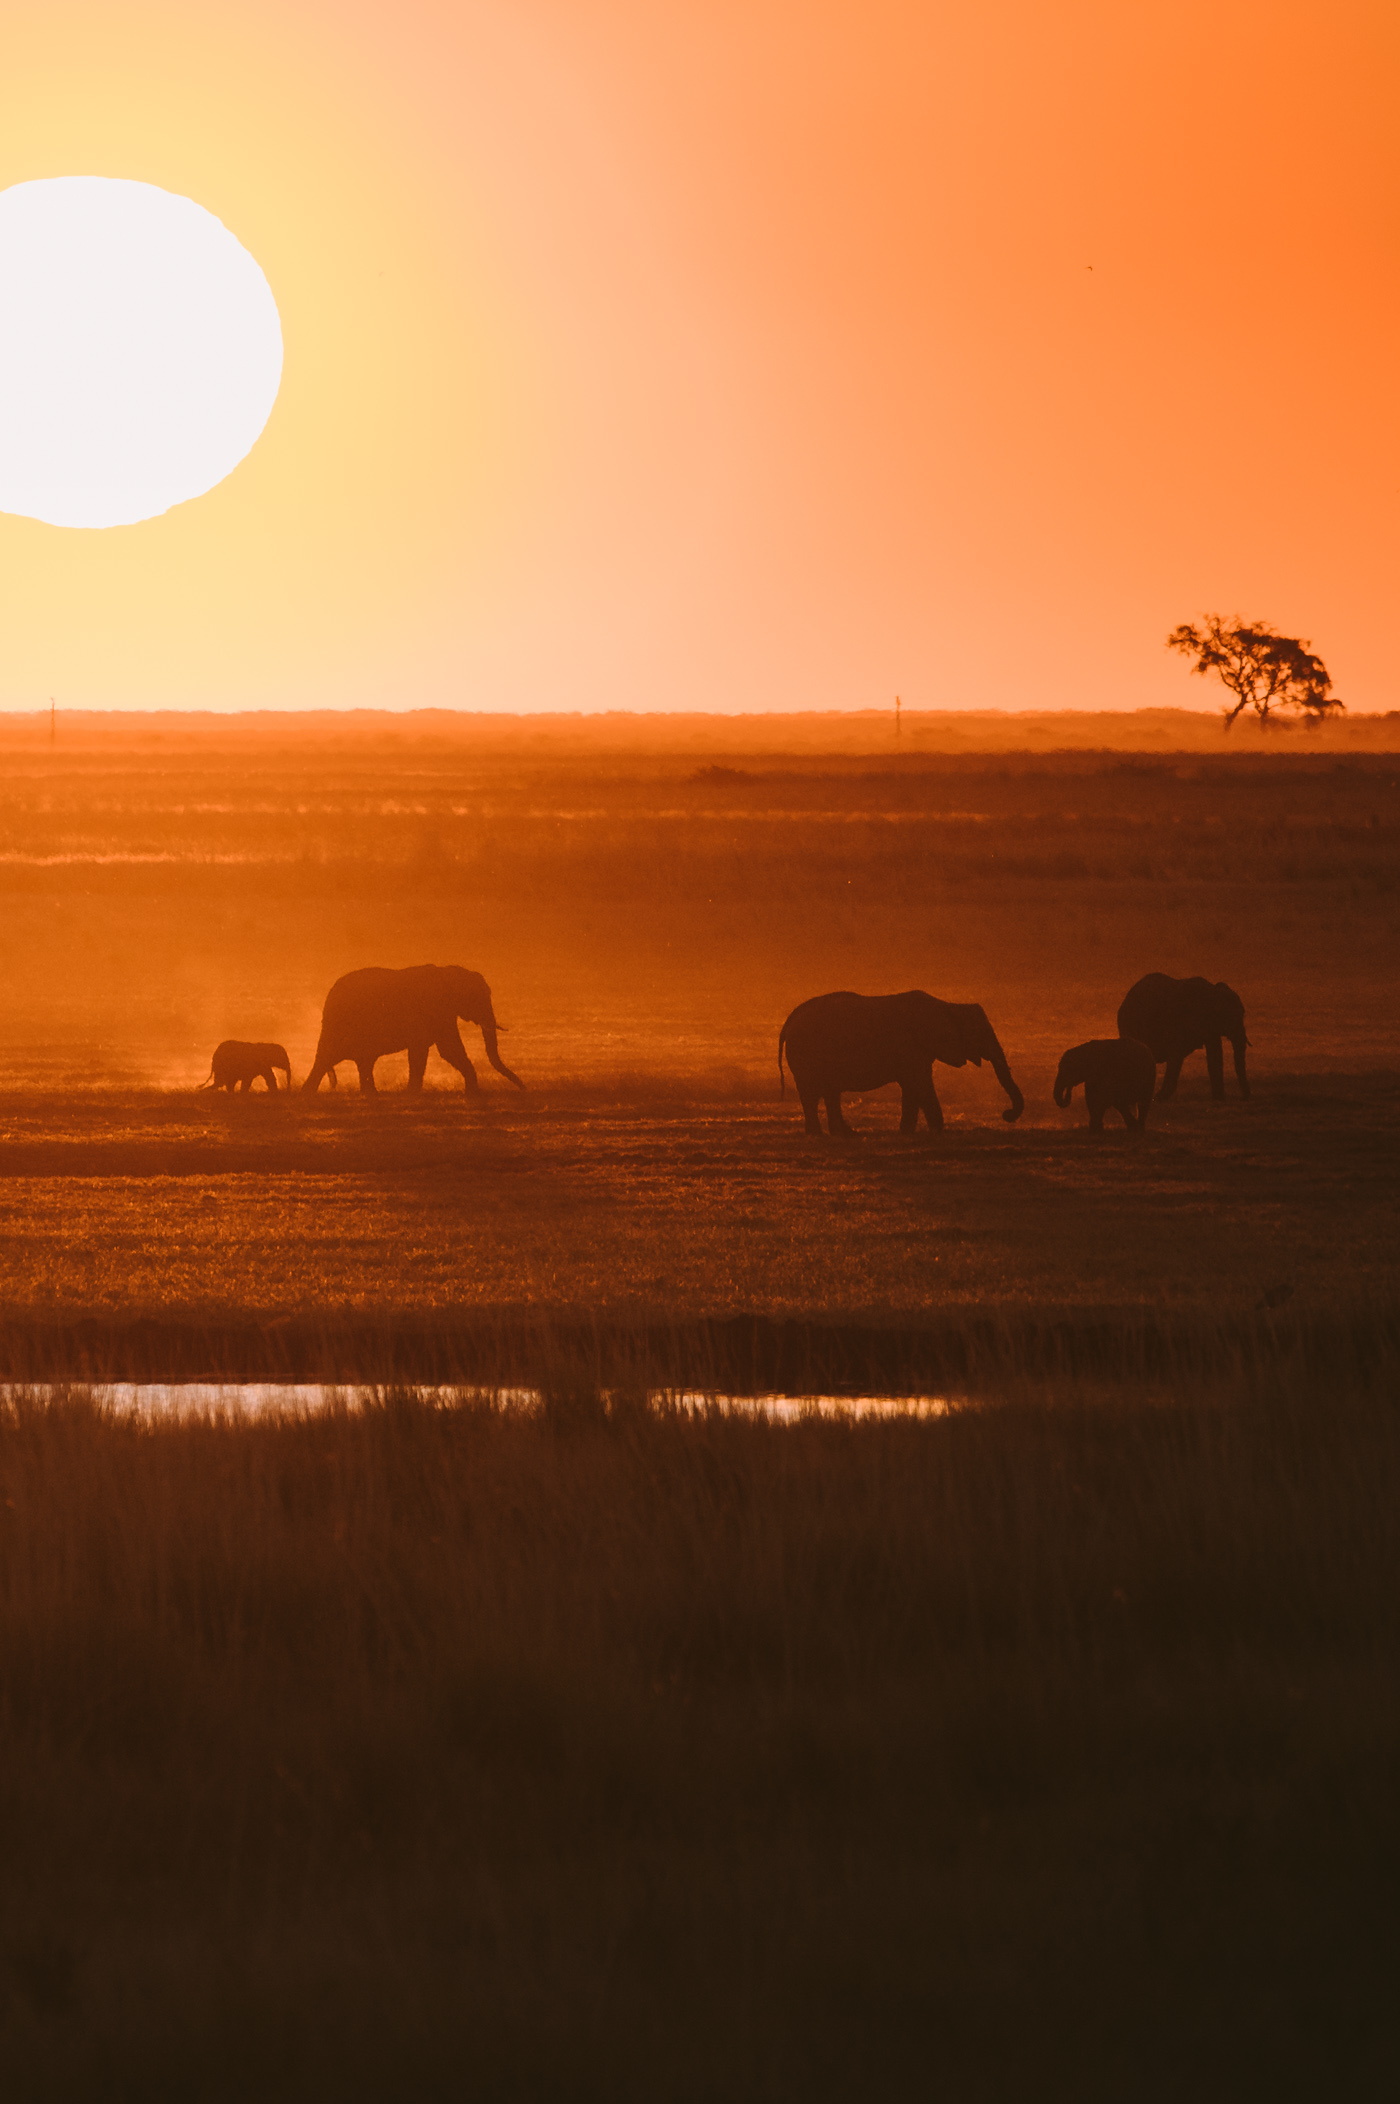 Chobe National Park Elephant herd at sunset